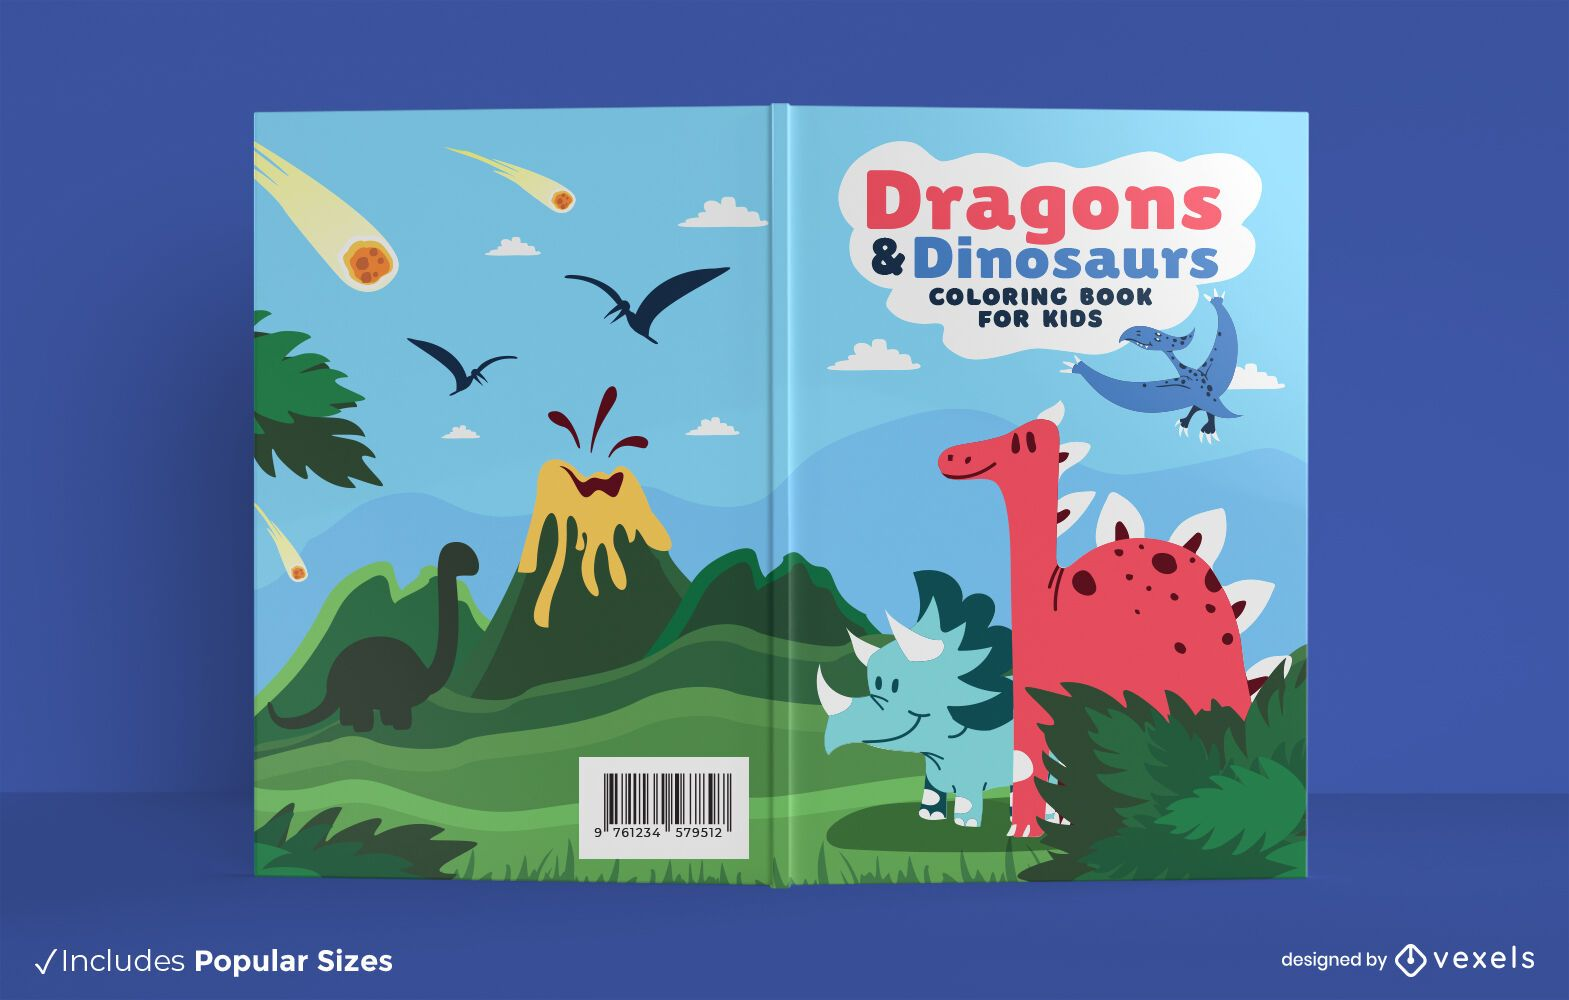 Dragons and dinosaurs book cover design